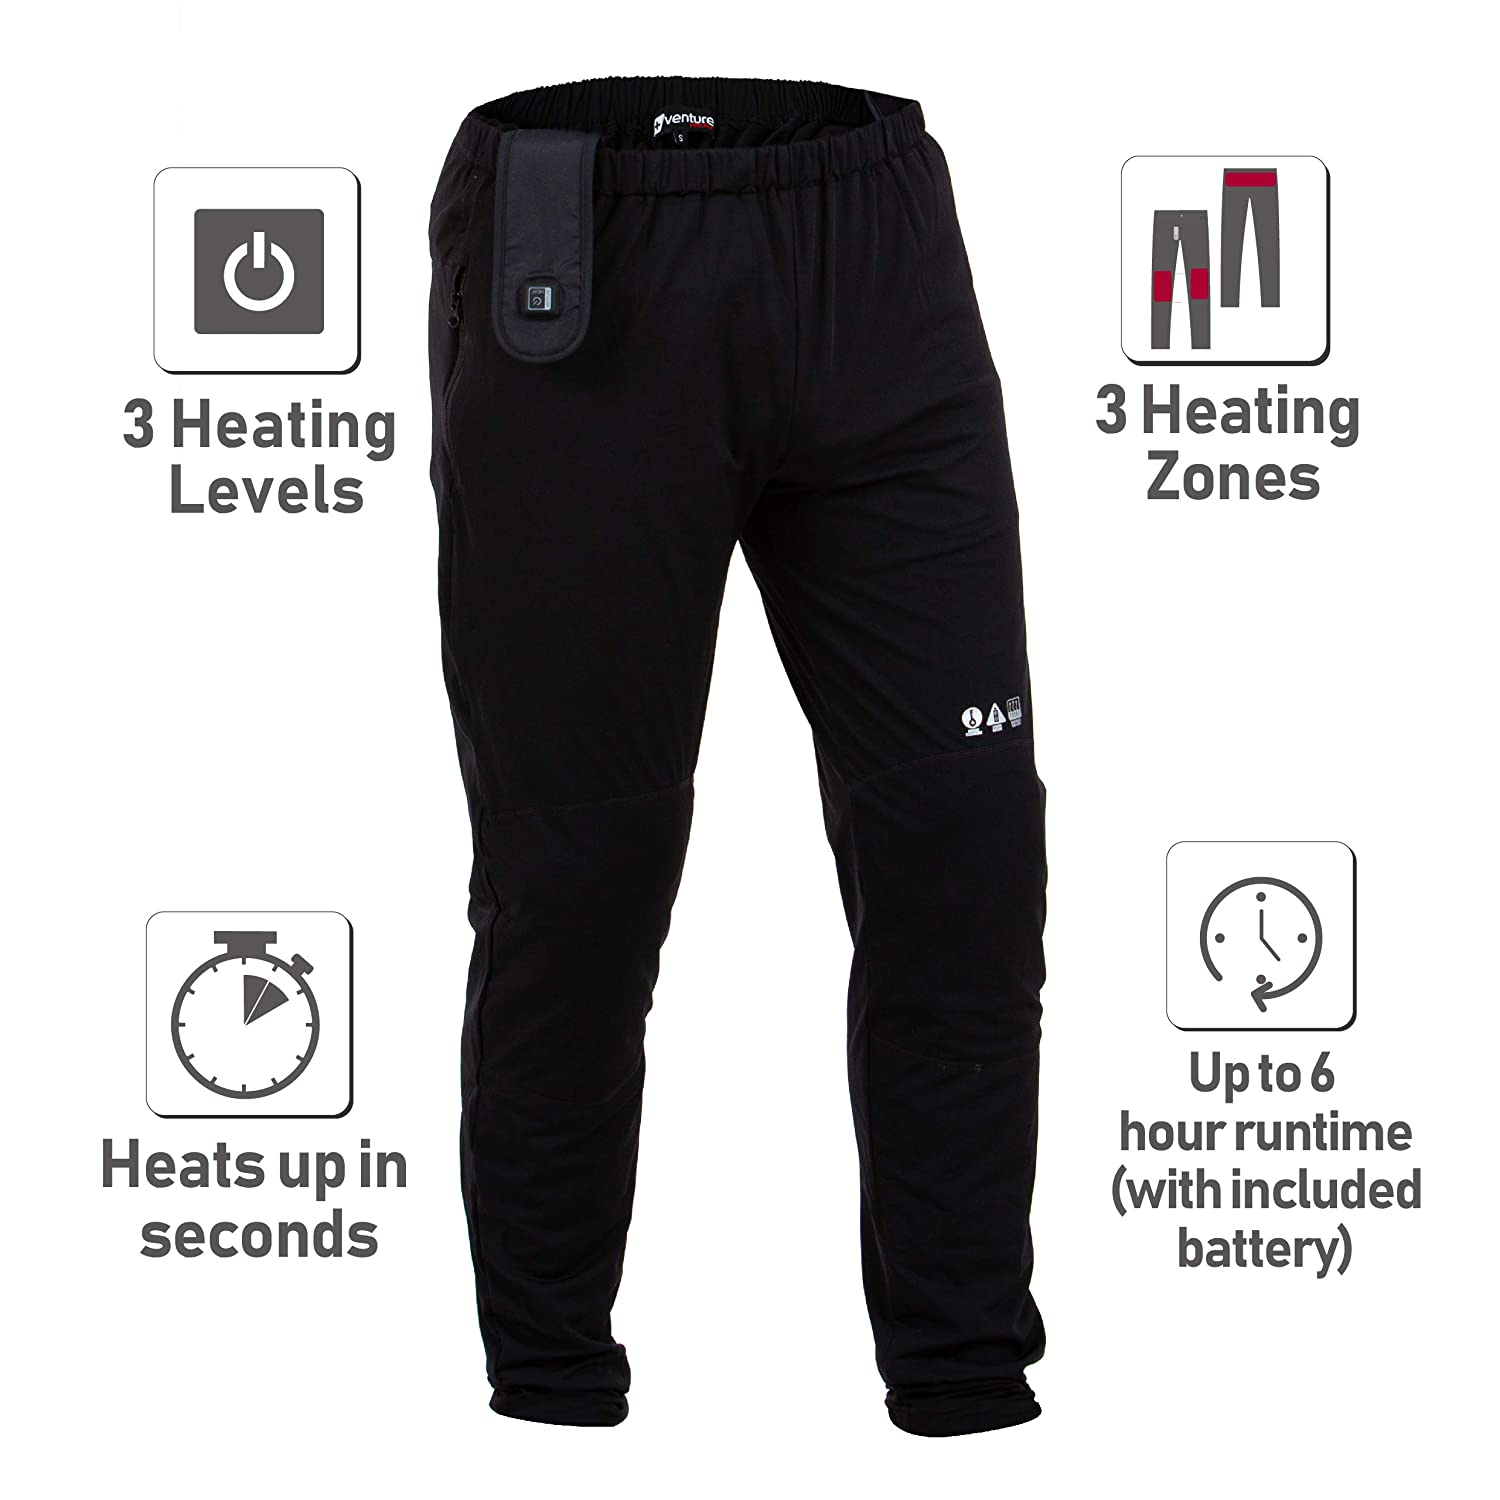 The Trekker Heated Pants for Men Venture Heat Heated Baselayer Pants with Battery 6 Hour Heated Pants for Women